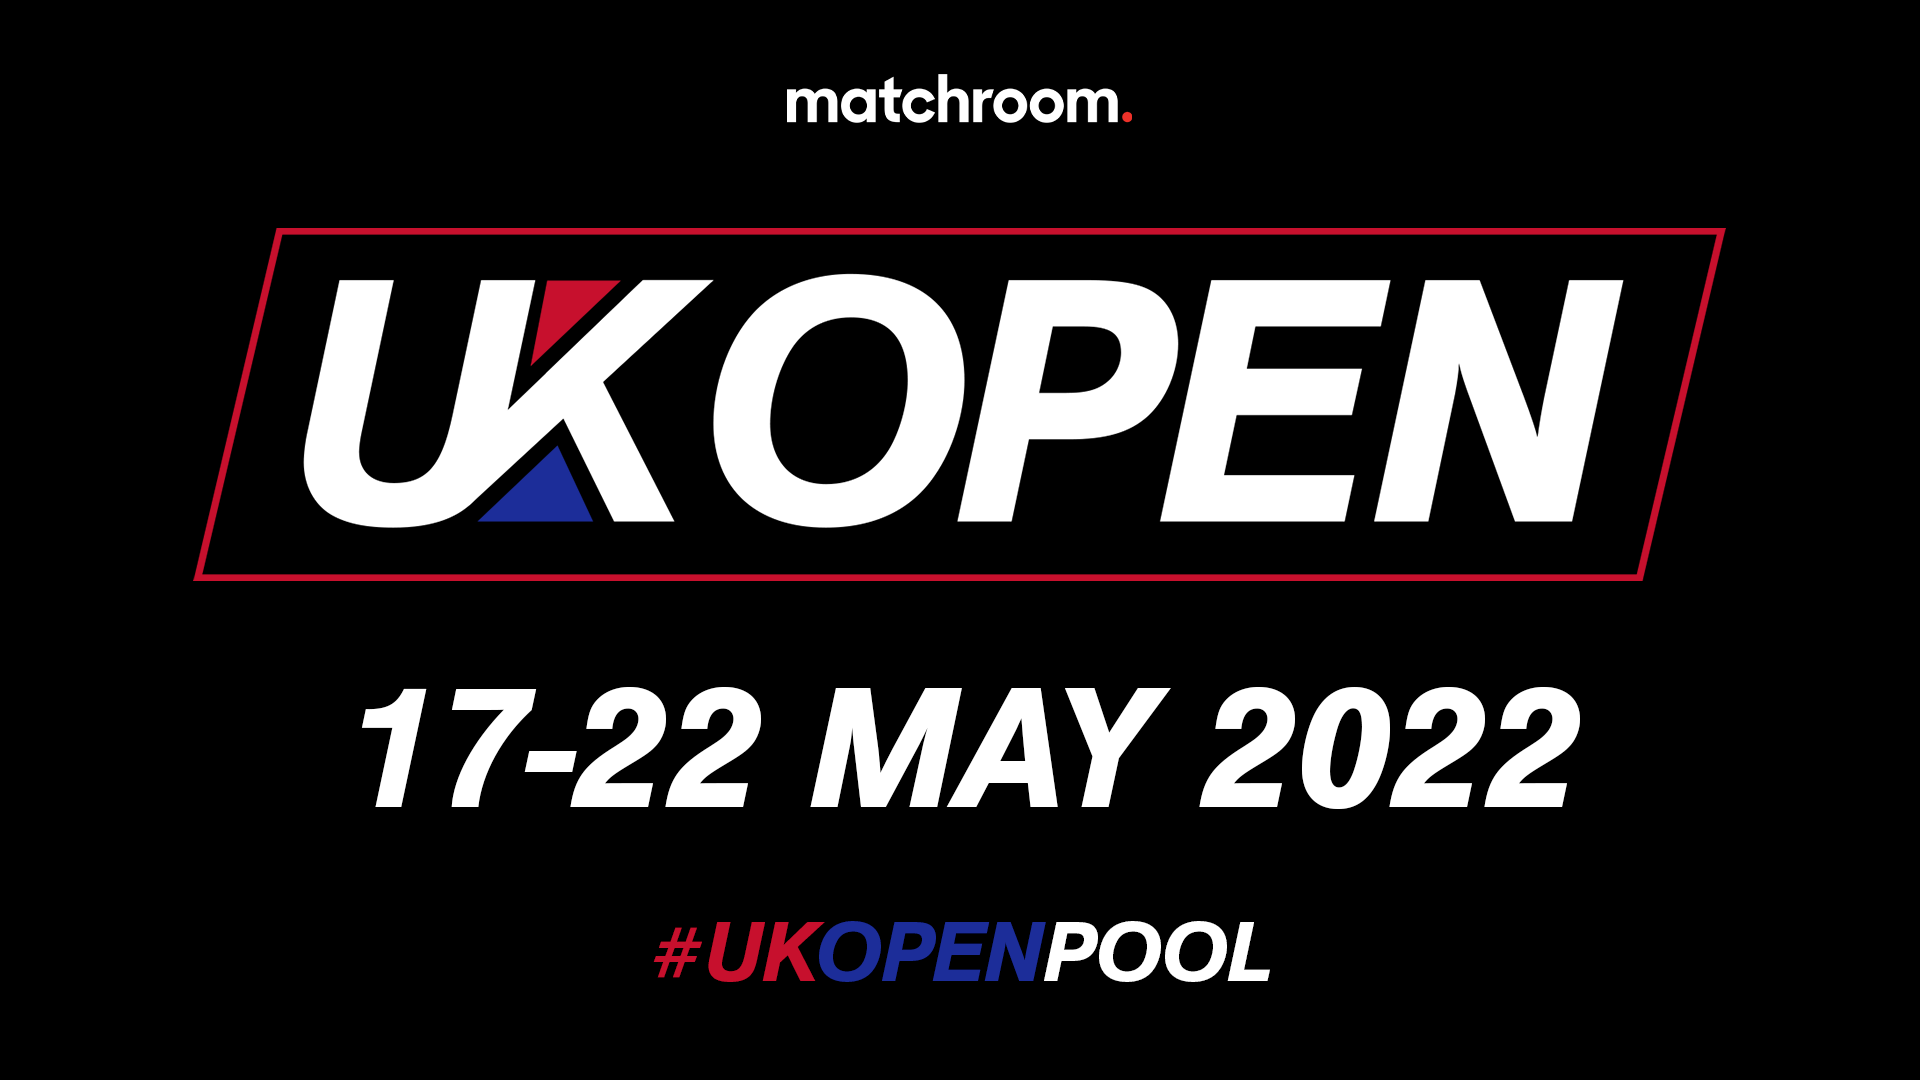 MATCHROOM POOL LAUNCHES UK OPEN WITH BIGGEST PRIZE FUND AND FIELD IN BRITISH POOL